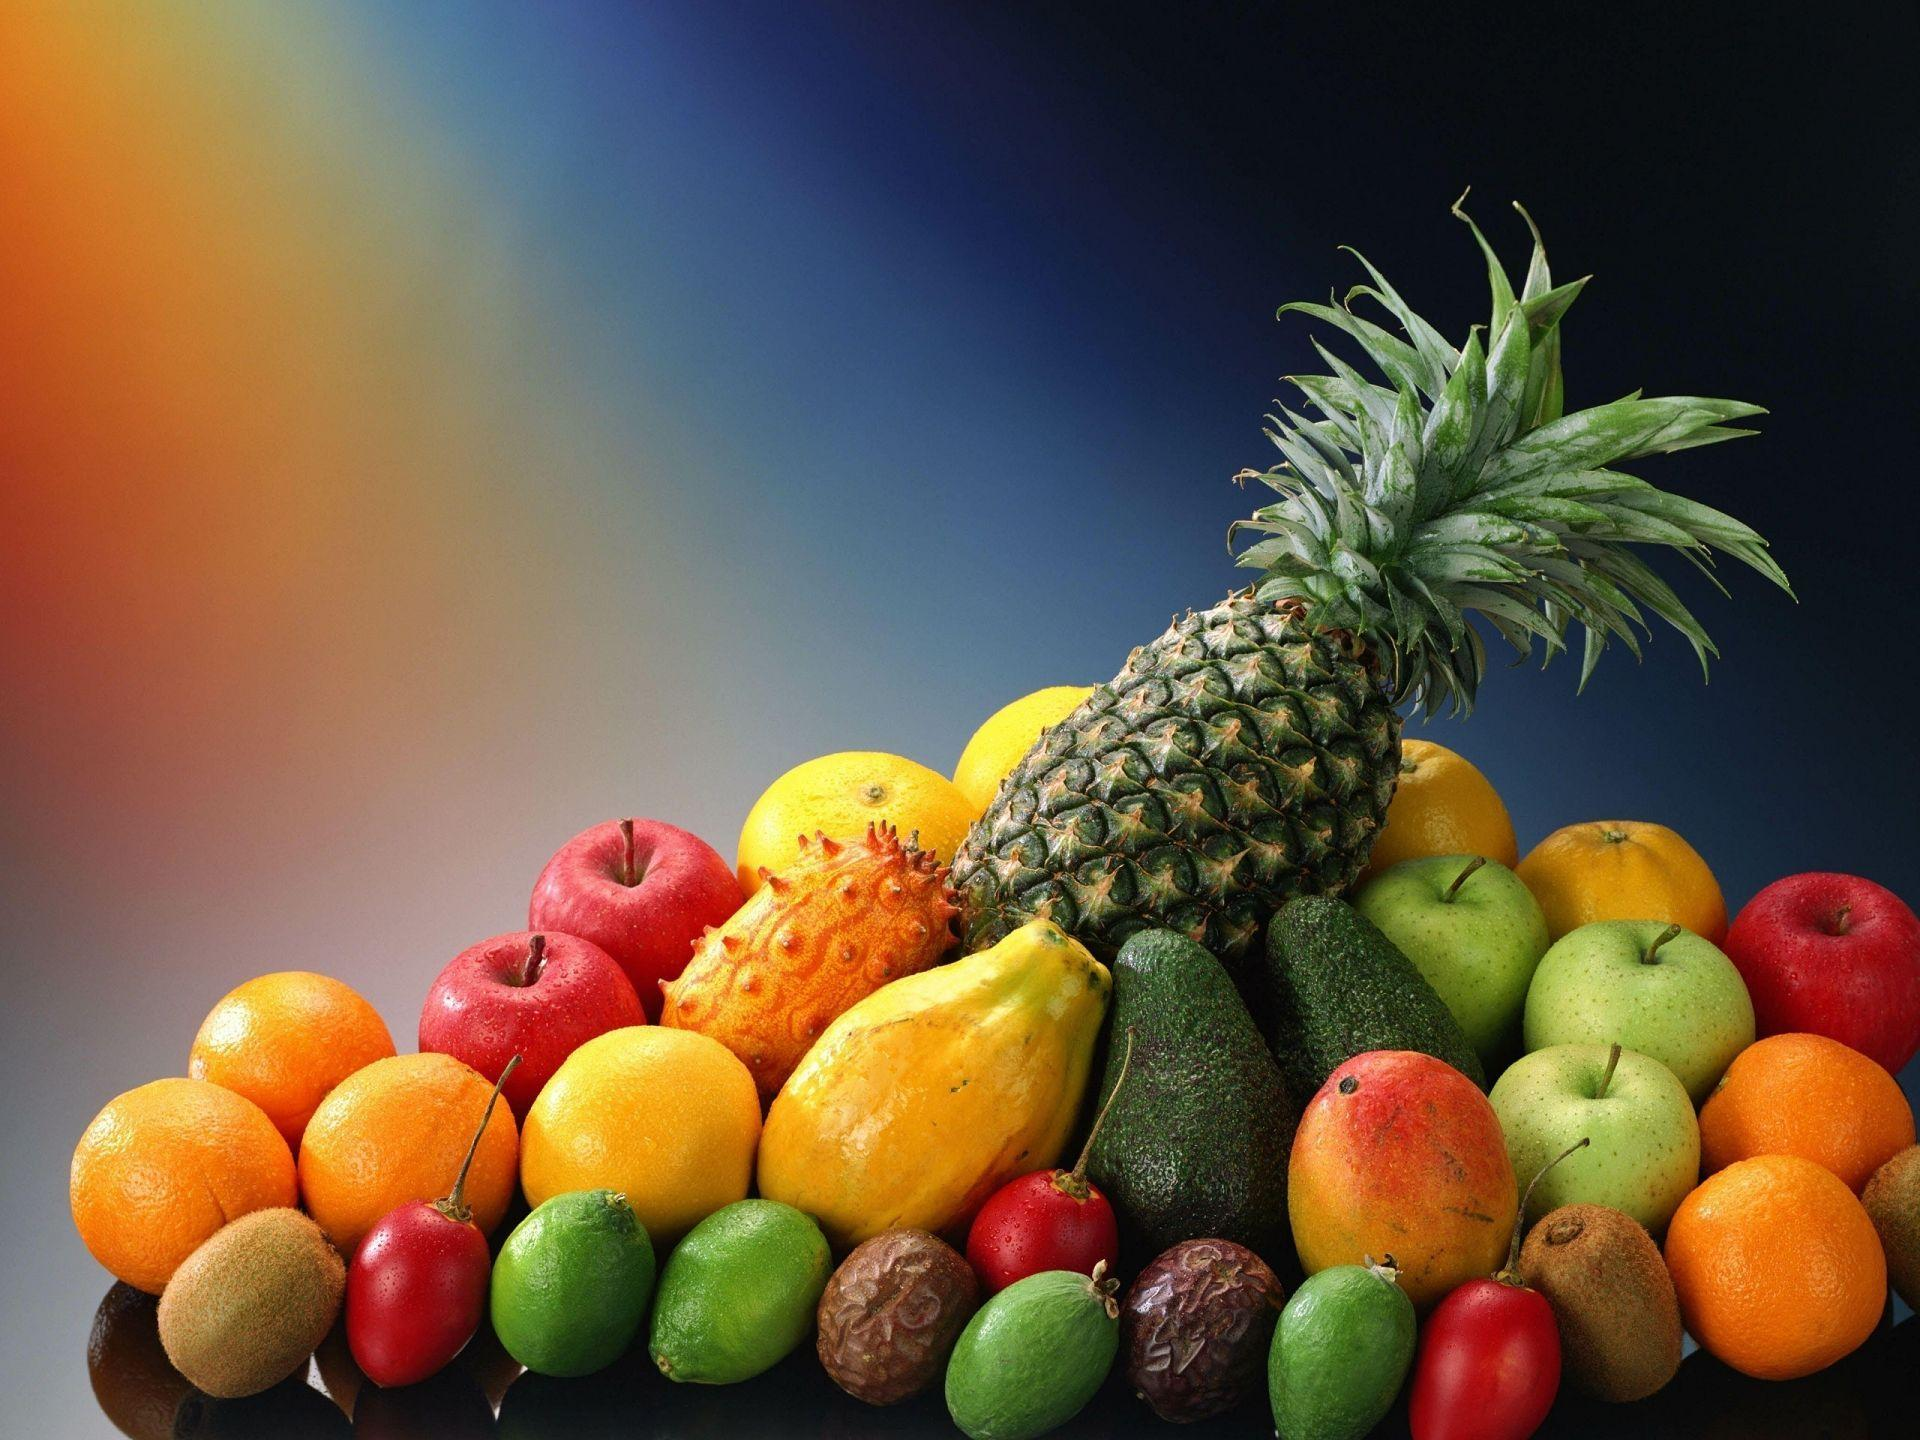 46+] Vegetable Fruit Wallpapers for Desktop